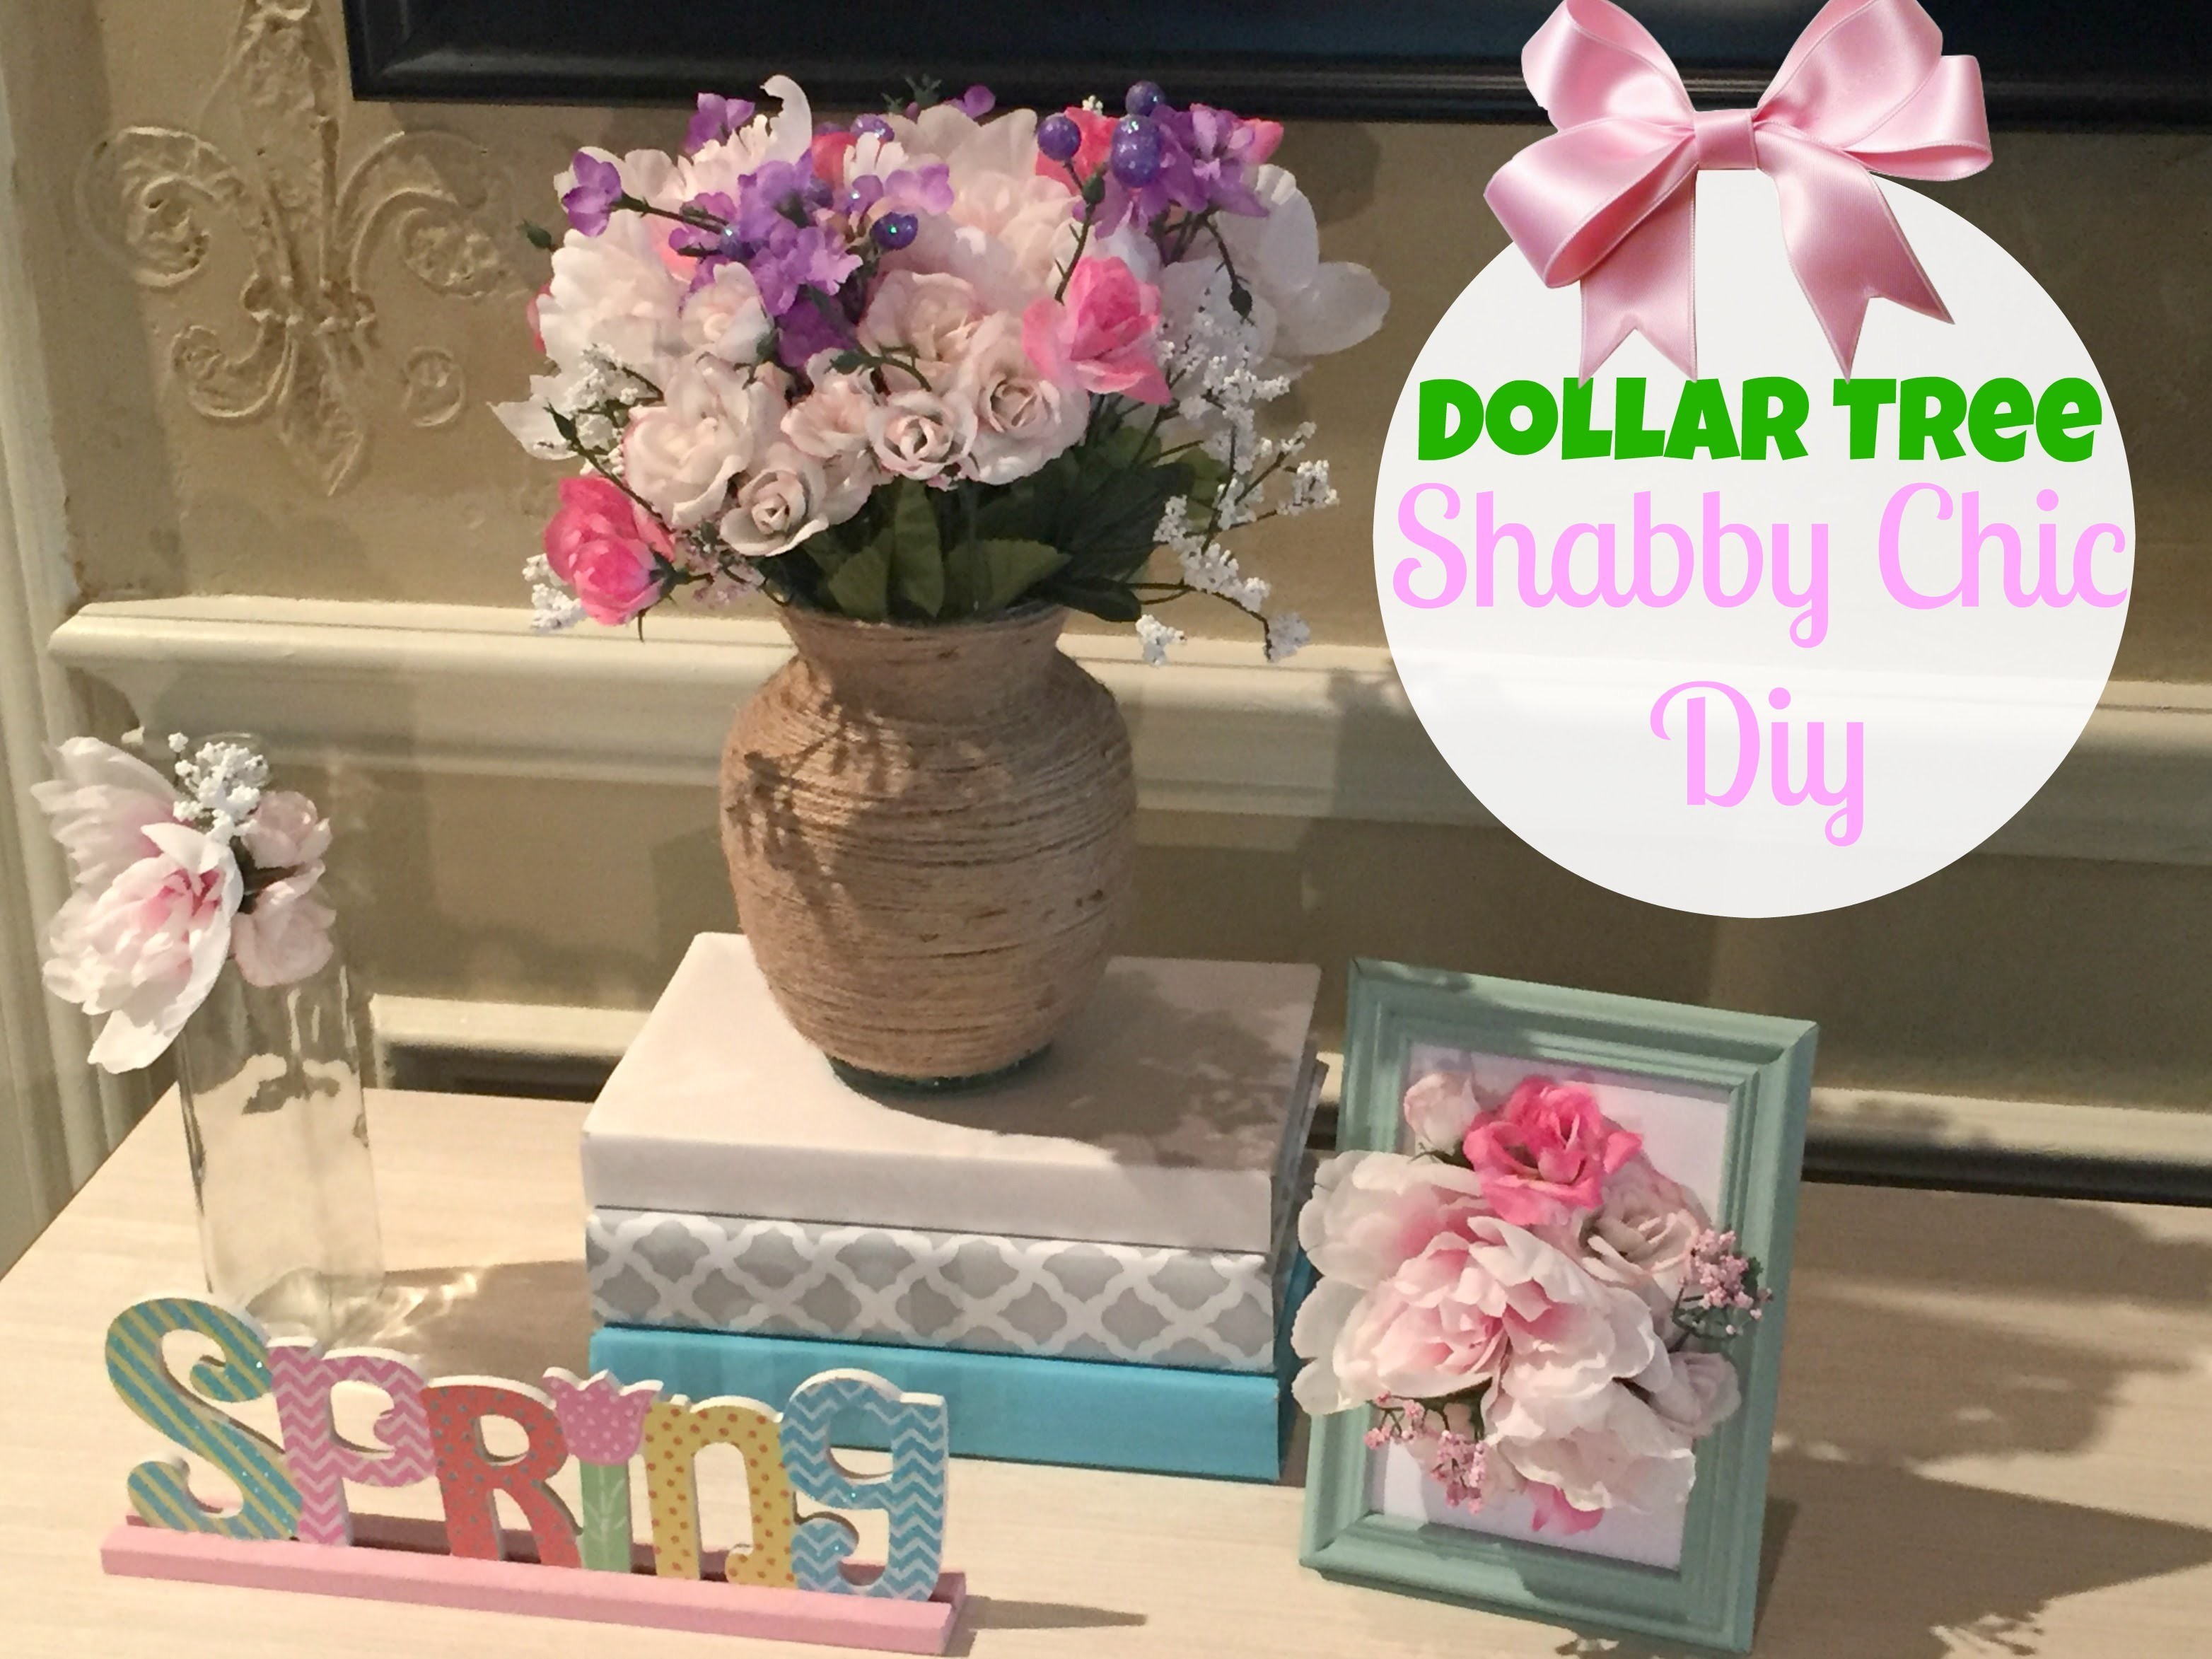 dollar tree diy shabby chic decor my crafts and diy projects. Black Bedroom Furniture Sets. Home Design Ideas